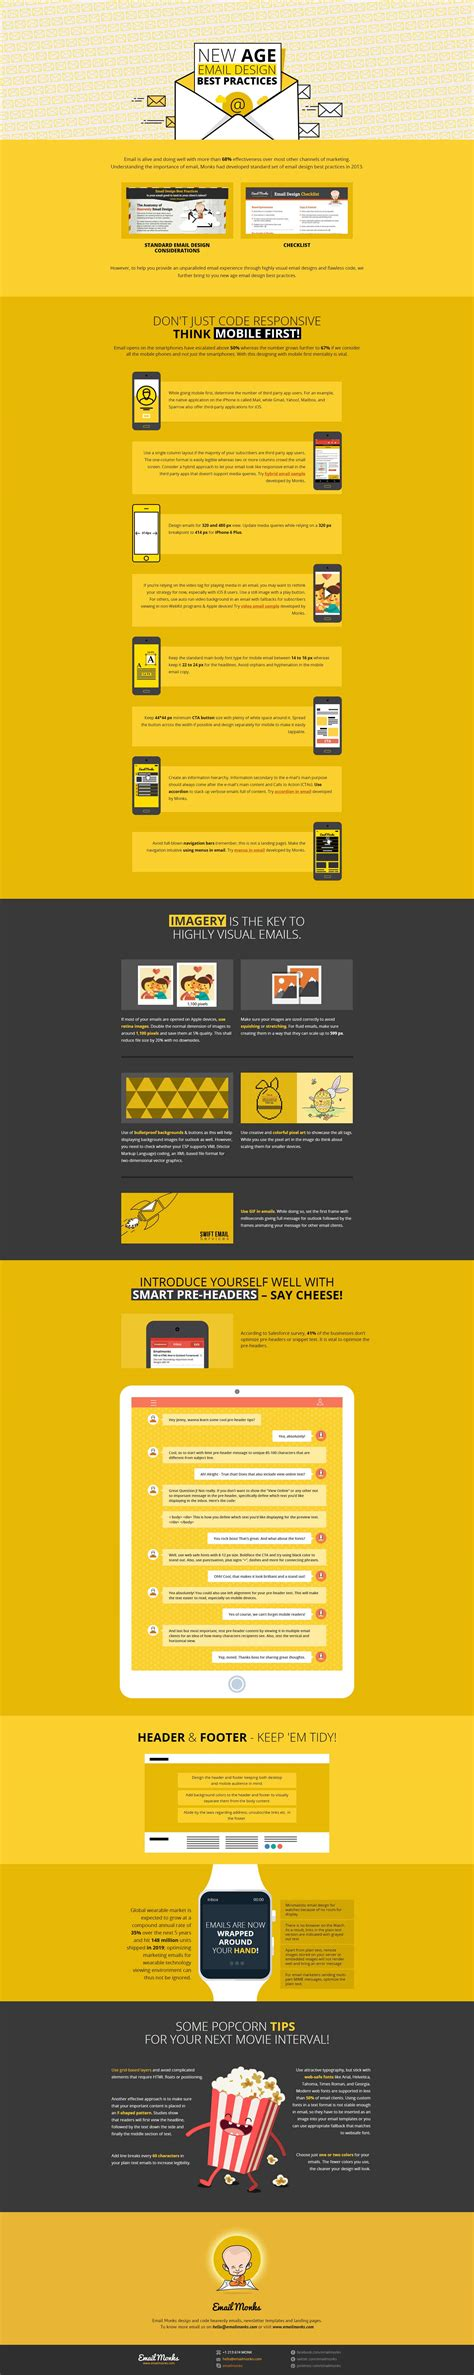 email layout best practices responsive email design best practices and tips emailmonks